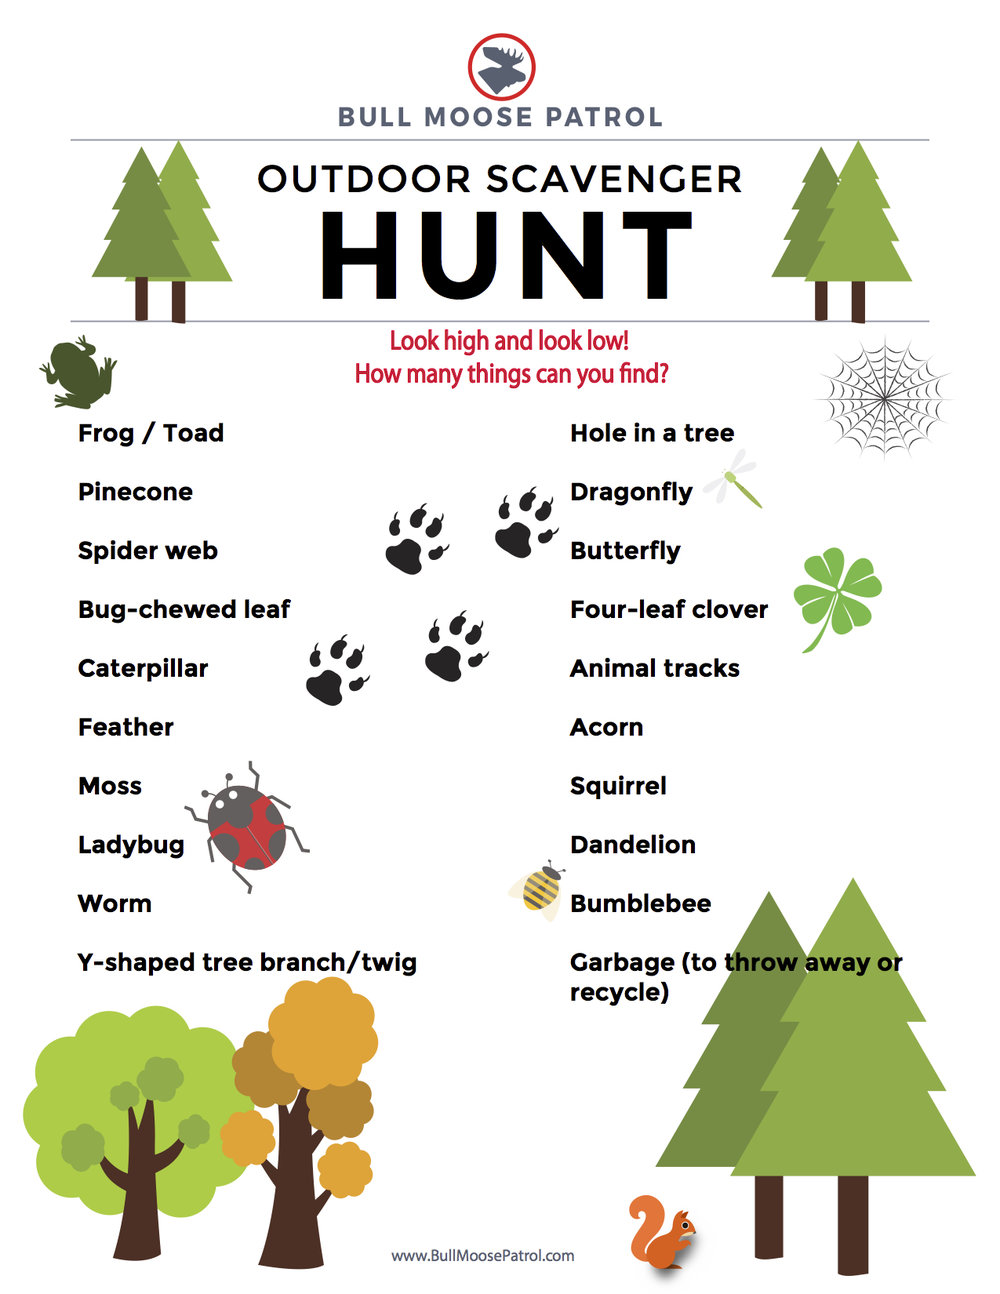 Download and print our outdoor scavenger hunt list!